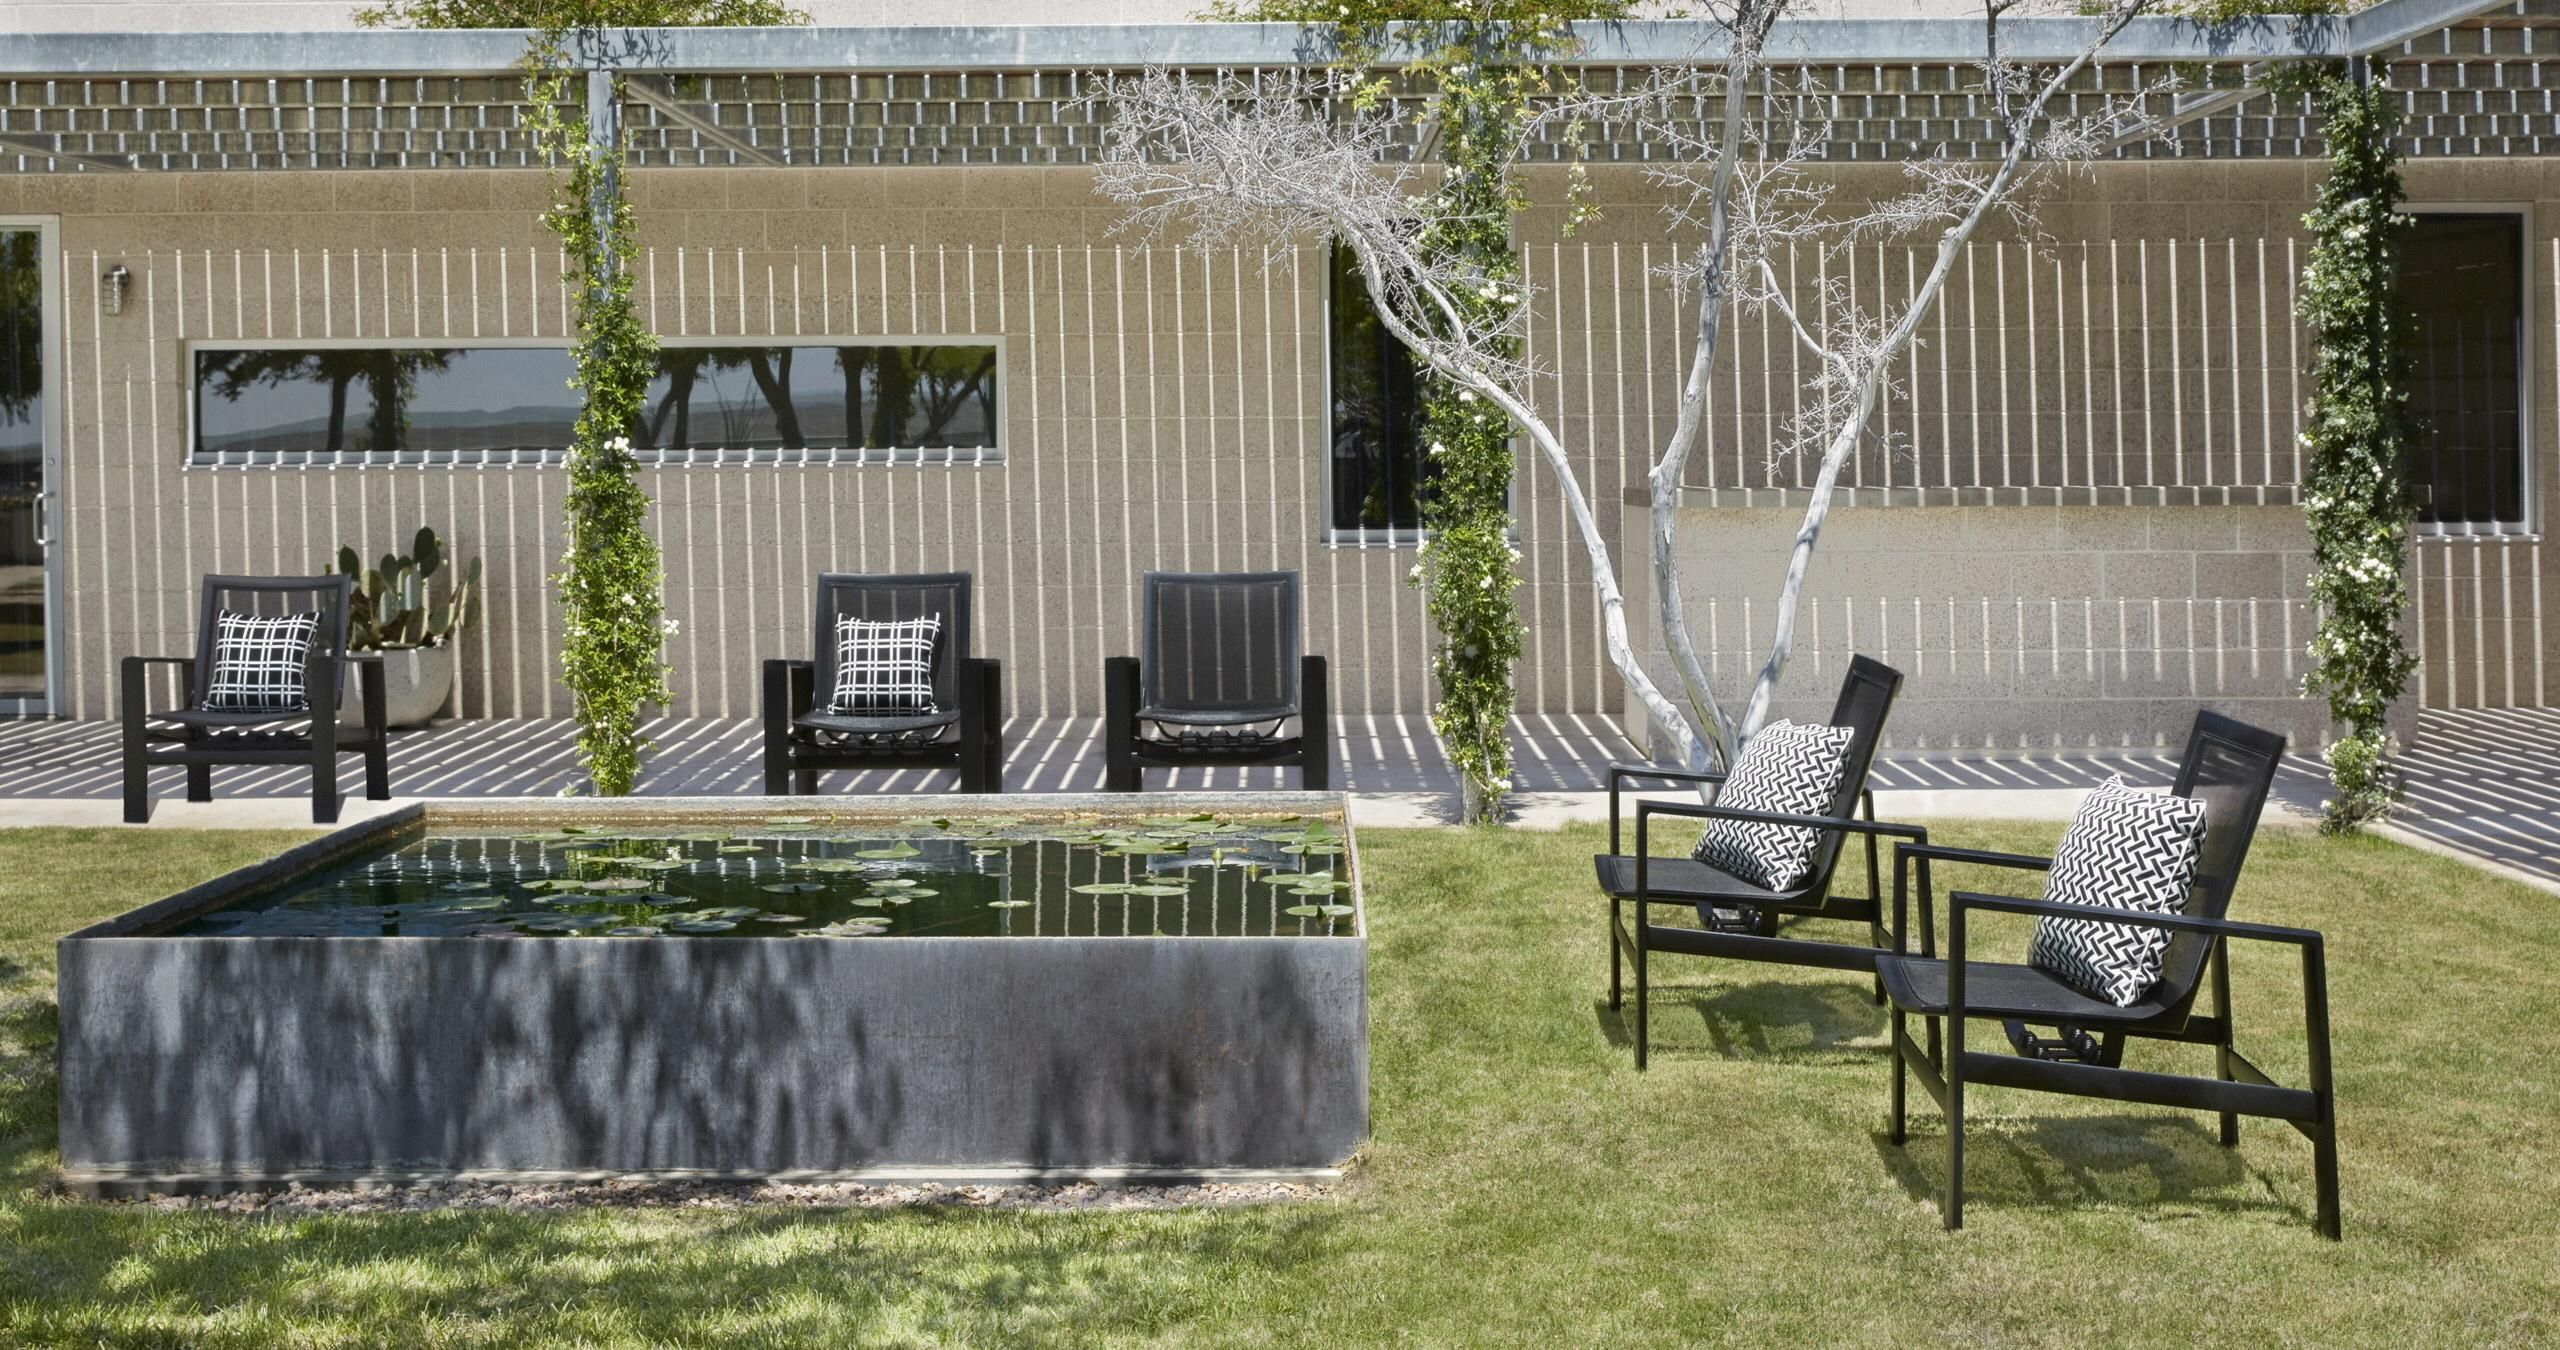 Luxury Outdoor Furniture | Residential & Commercial ... on Fine Living Patio Set id=81715